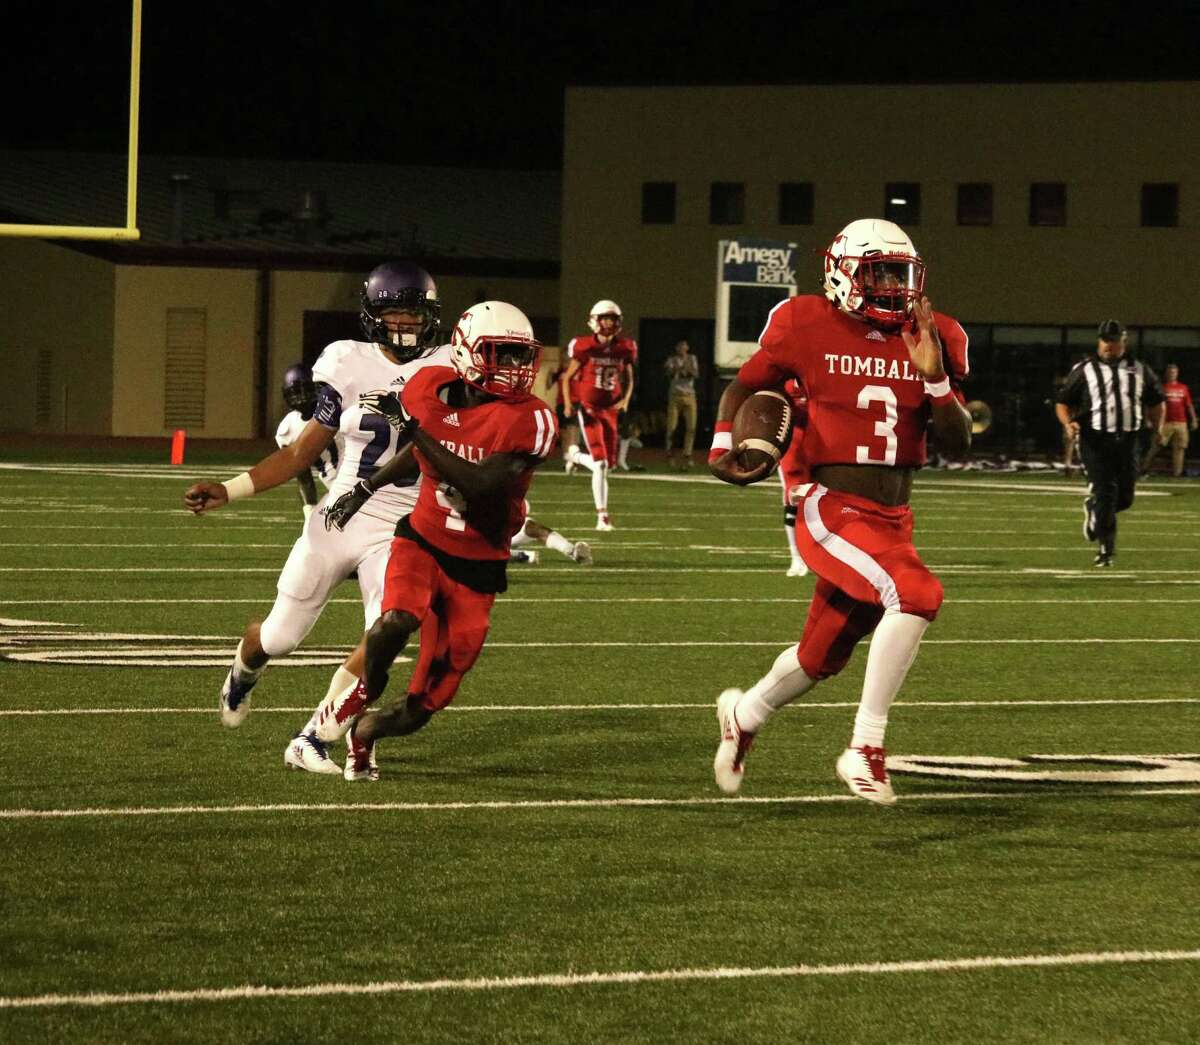 Tomball Football is 4-0 for the first time in a long time, and quarterback Tybo Taylor is a big part of why. Taylor averaged a mind-boggling 21 yards per carry through the first two games of the season, and he opened Friday's contest against Willis with an 84-yard touchdown rush. If he can continue at his prodigious pace, there is no telling what the Tomball Cougars might accomplish this year.